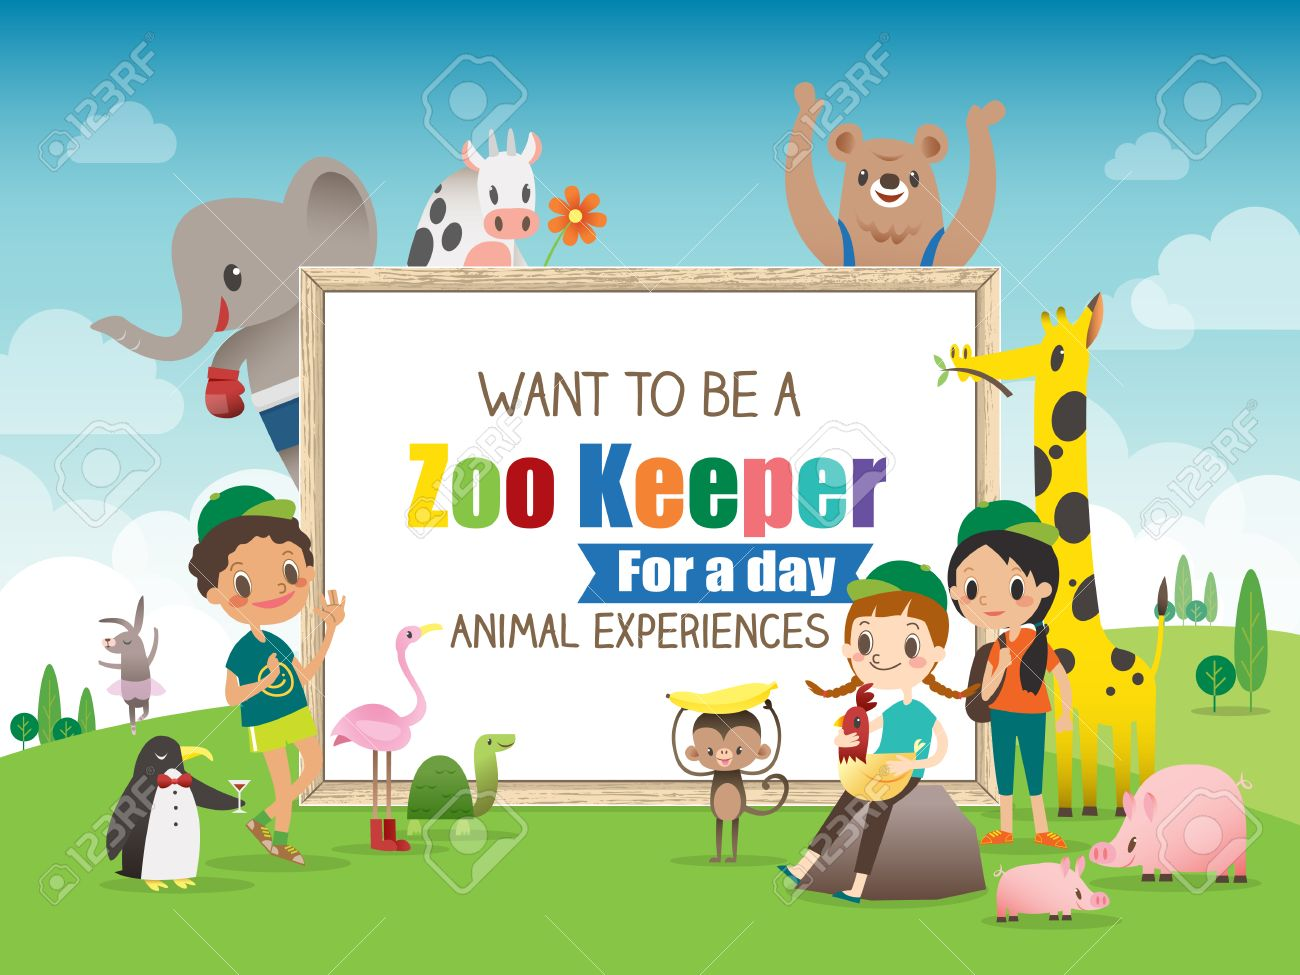 zoo keeper for a day children and animals cartoon frame border